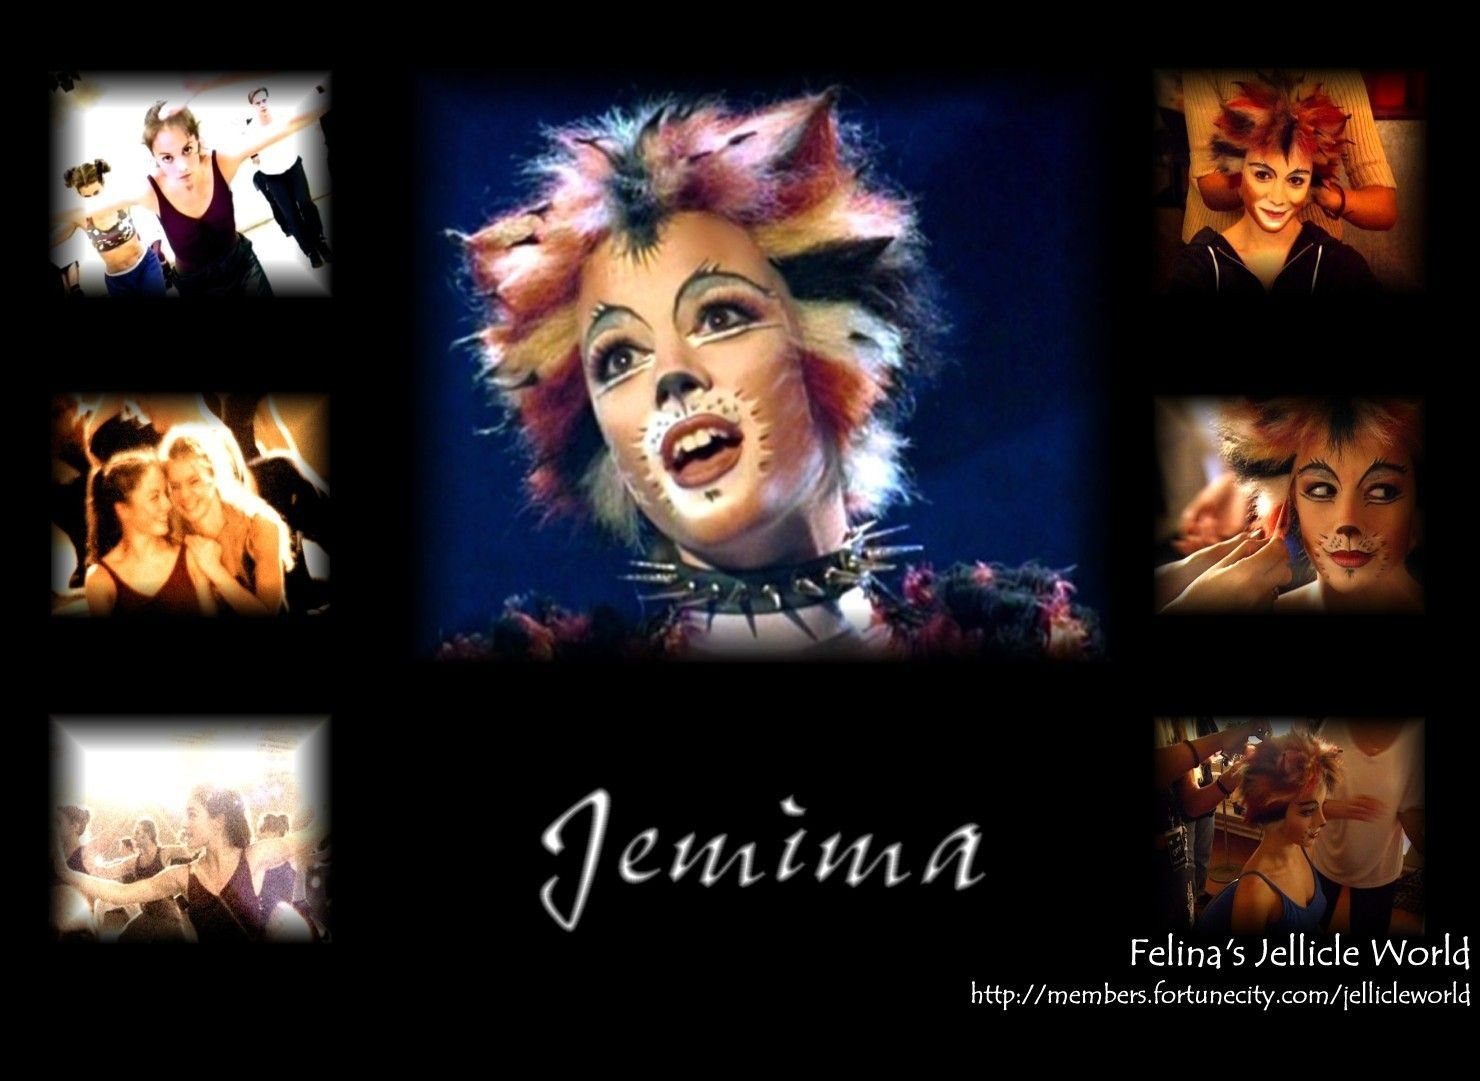 images of musicals Cats the Musical Cats Musical wall